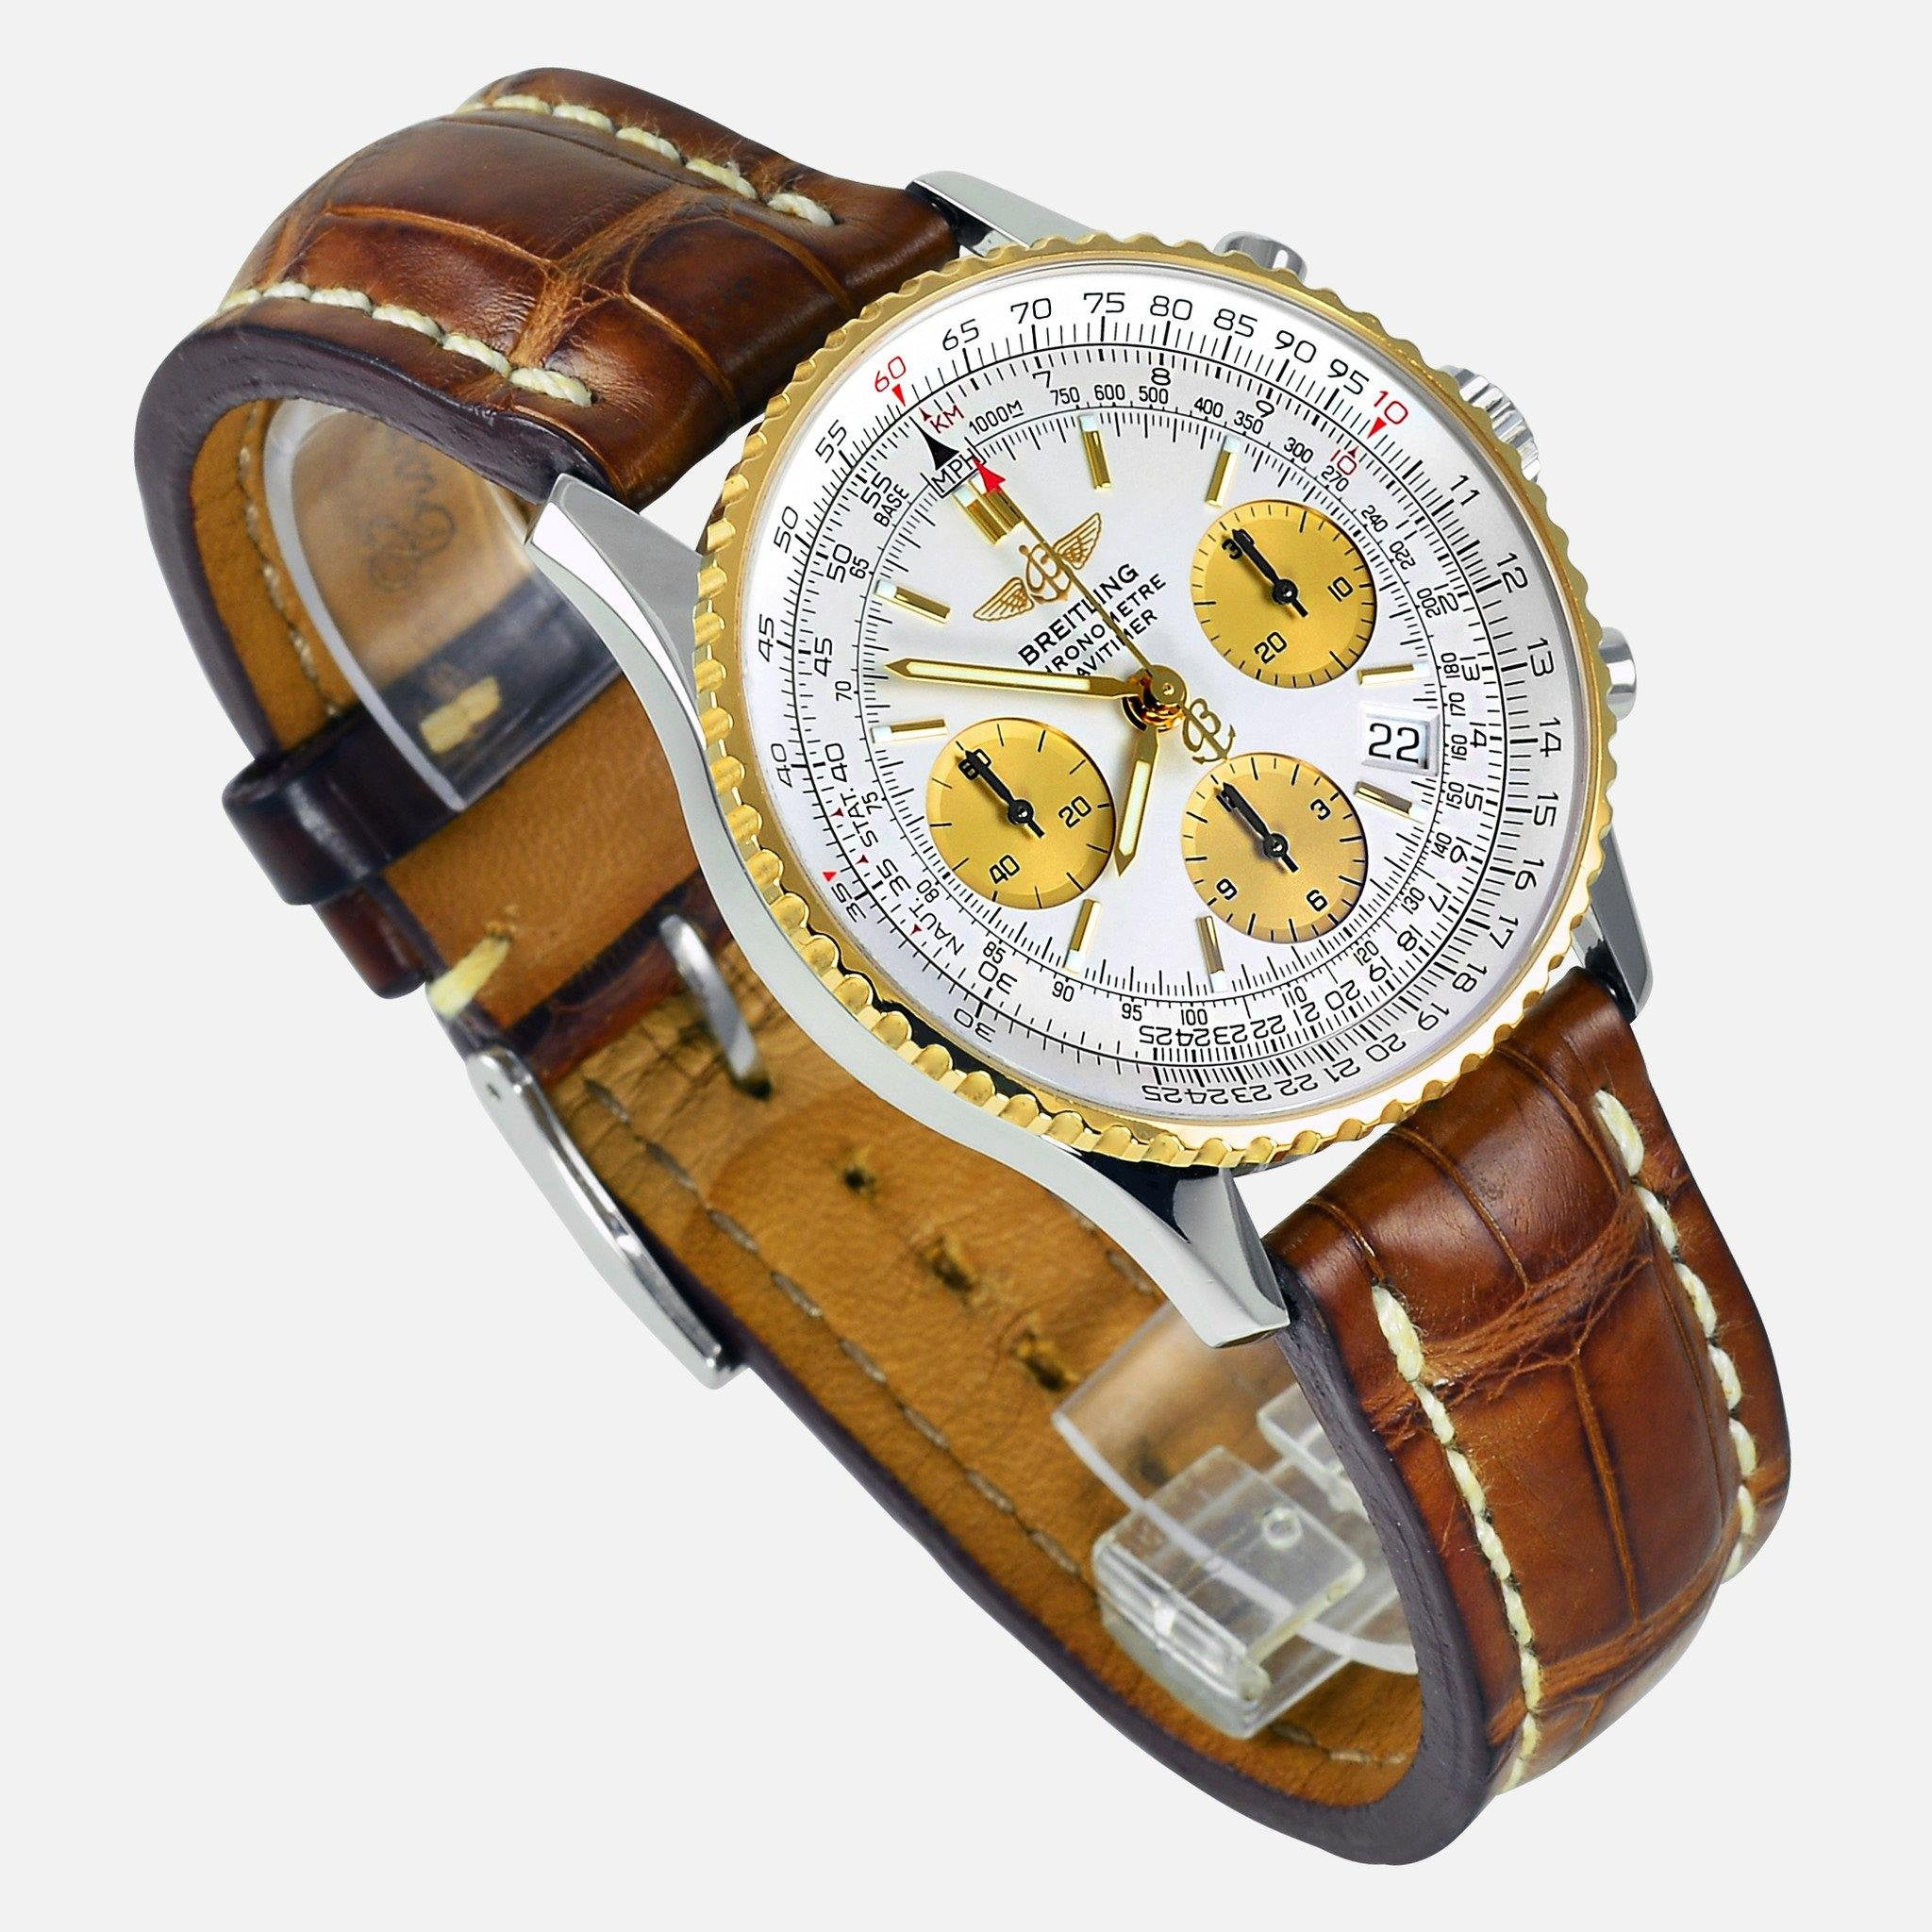 automatic watches goldrubber bvlgari canada blackdial mens ca bgcolor yellow mechanical reebonz rubber gold fff mode pad